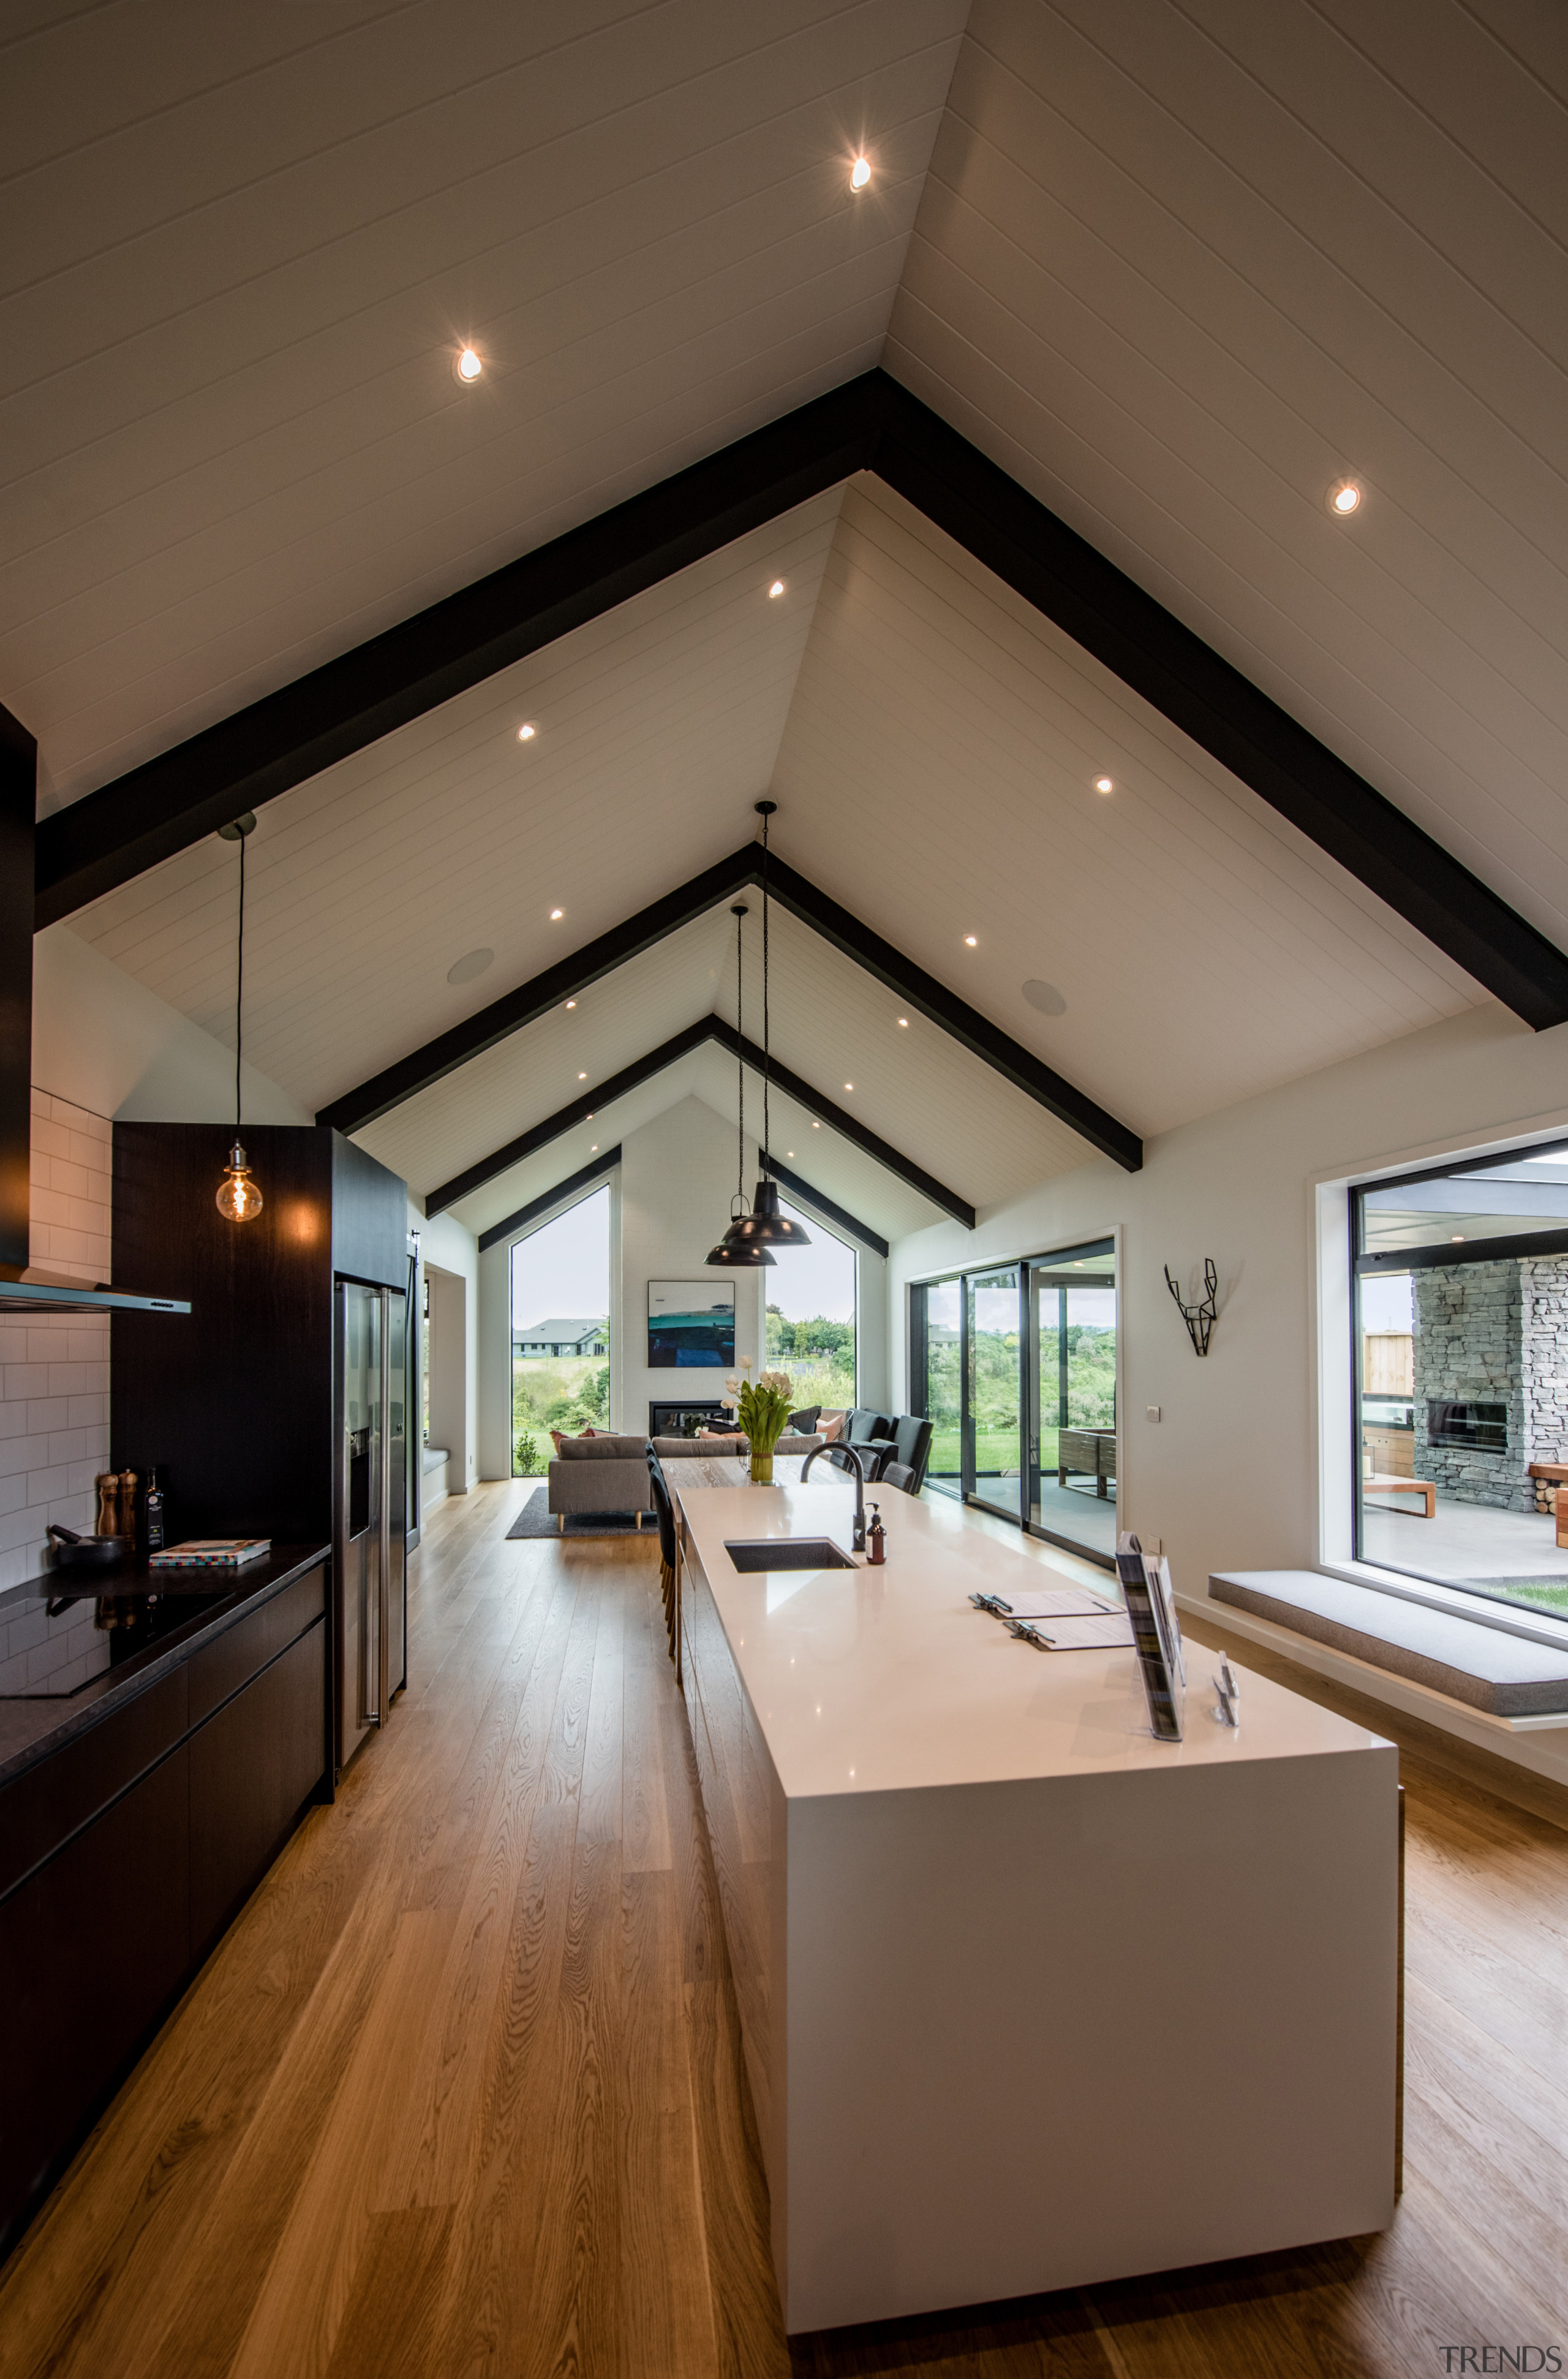 James Hardies Axon Panel provides the strong, deep architecture, ceiling, daylighting, floor, flooring, house, interior design, living room, real estate, wood flooring, brown